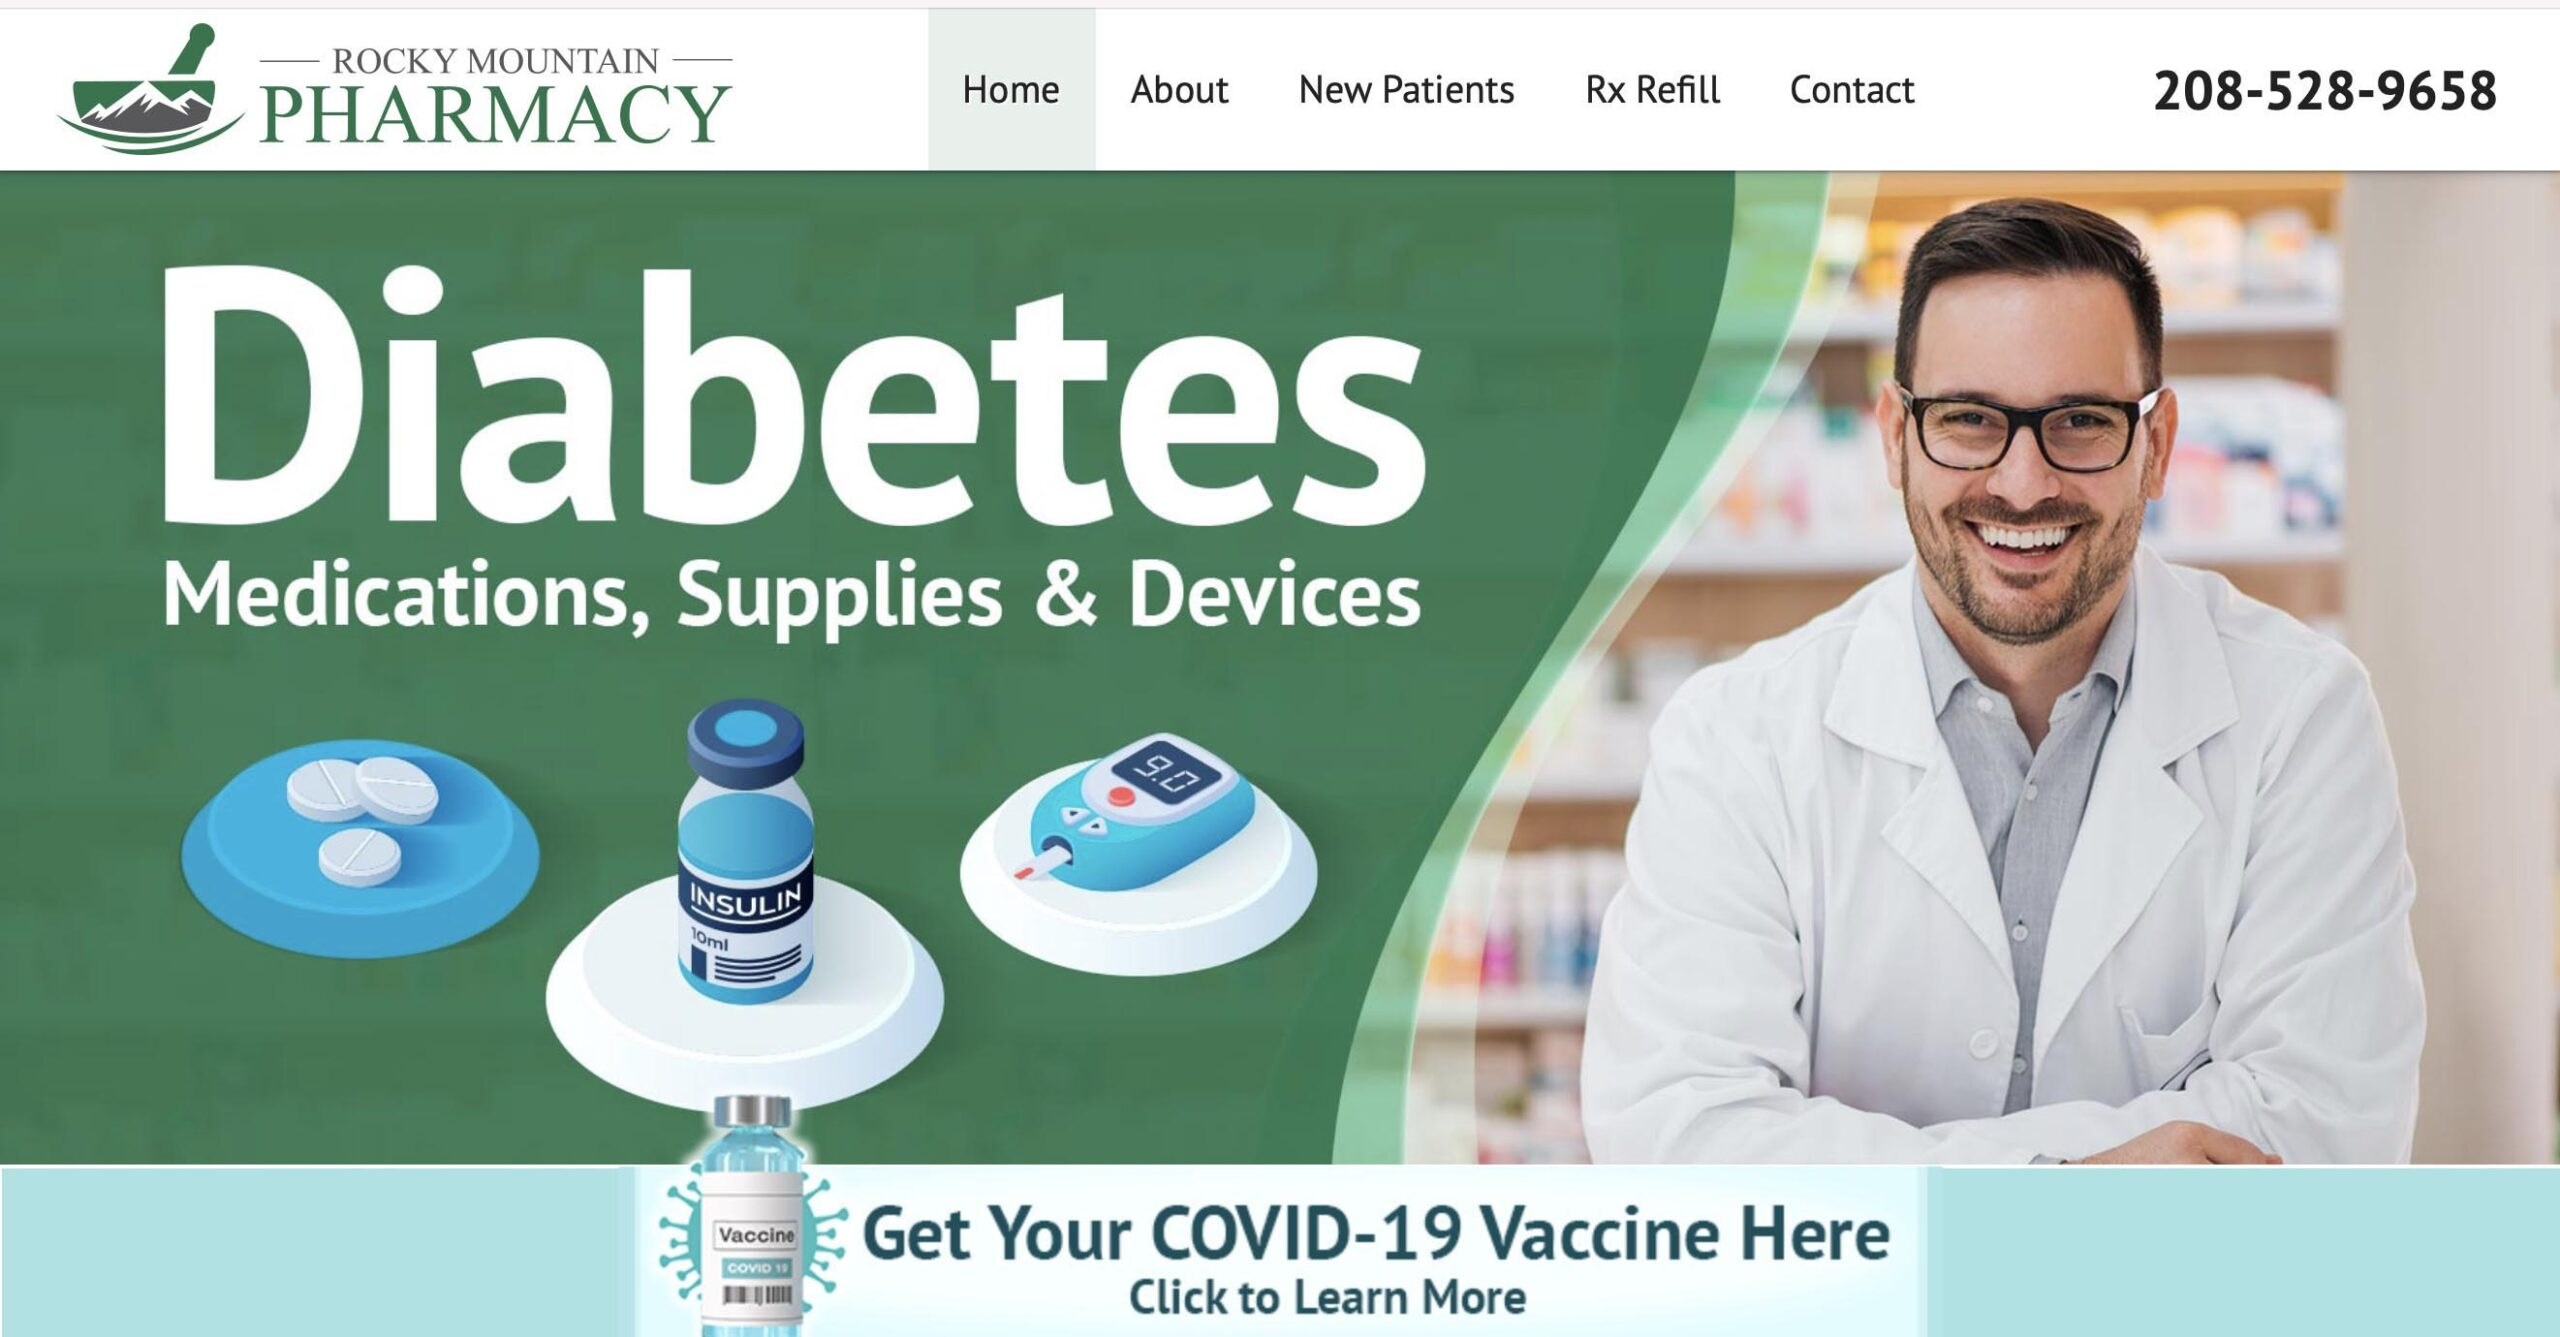 Marketing consultant - website developer project for Rocky Mountain Pharmacy